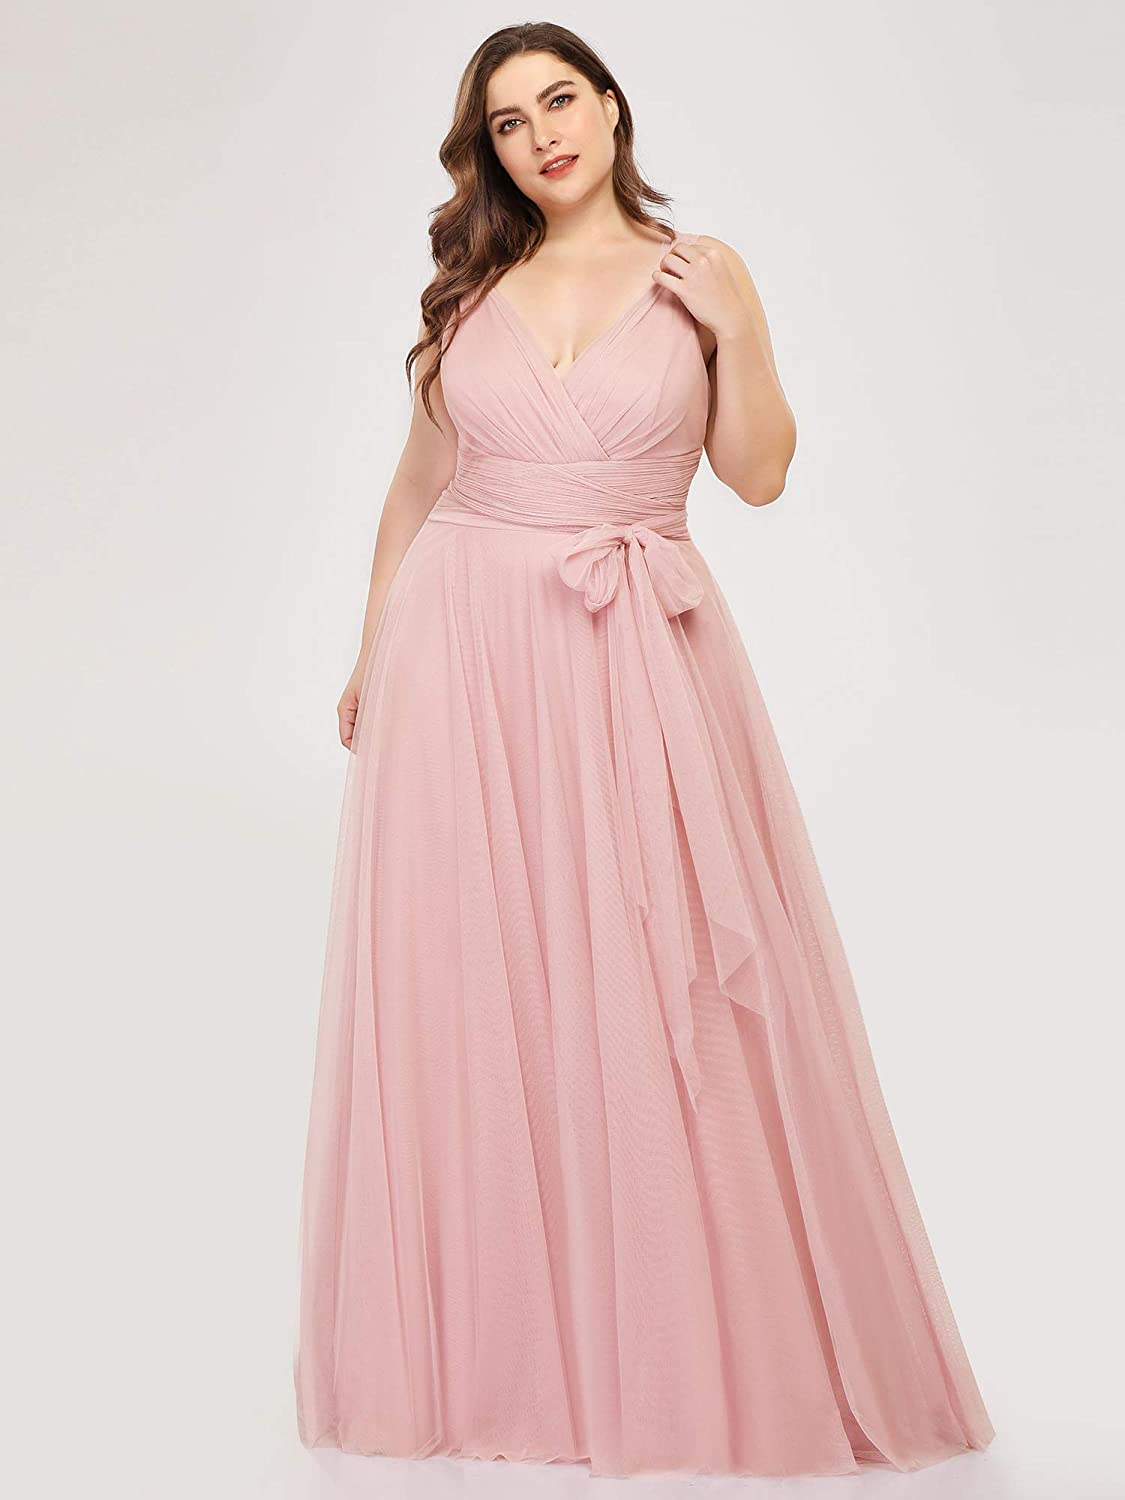 Ever-Pretty Women\'s Plus Size V-Neck Wrap Empire Waist Tulle Bridesmaid  Dress 7303PZ